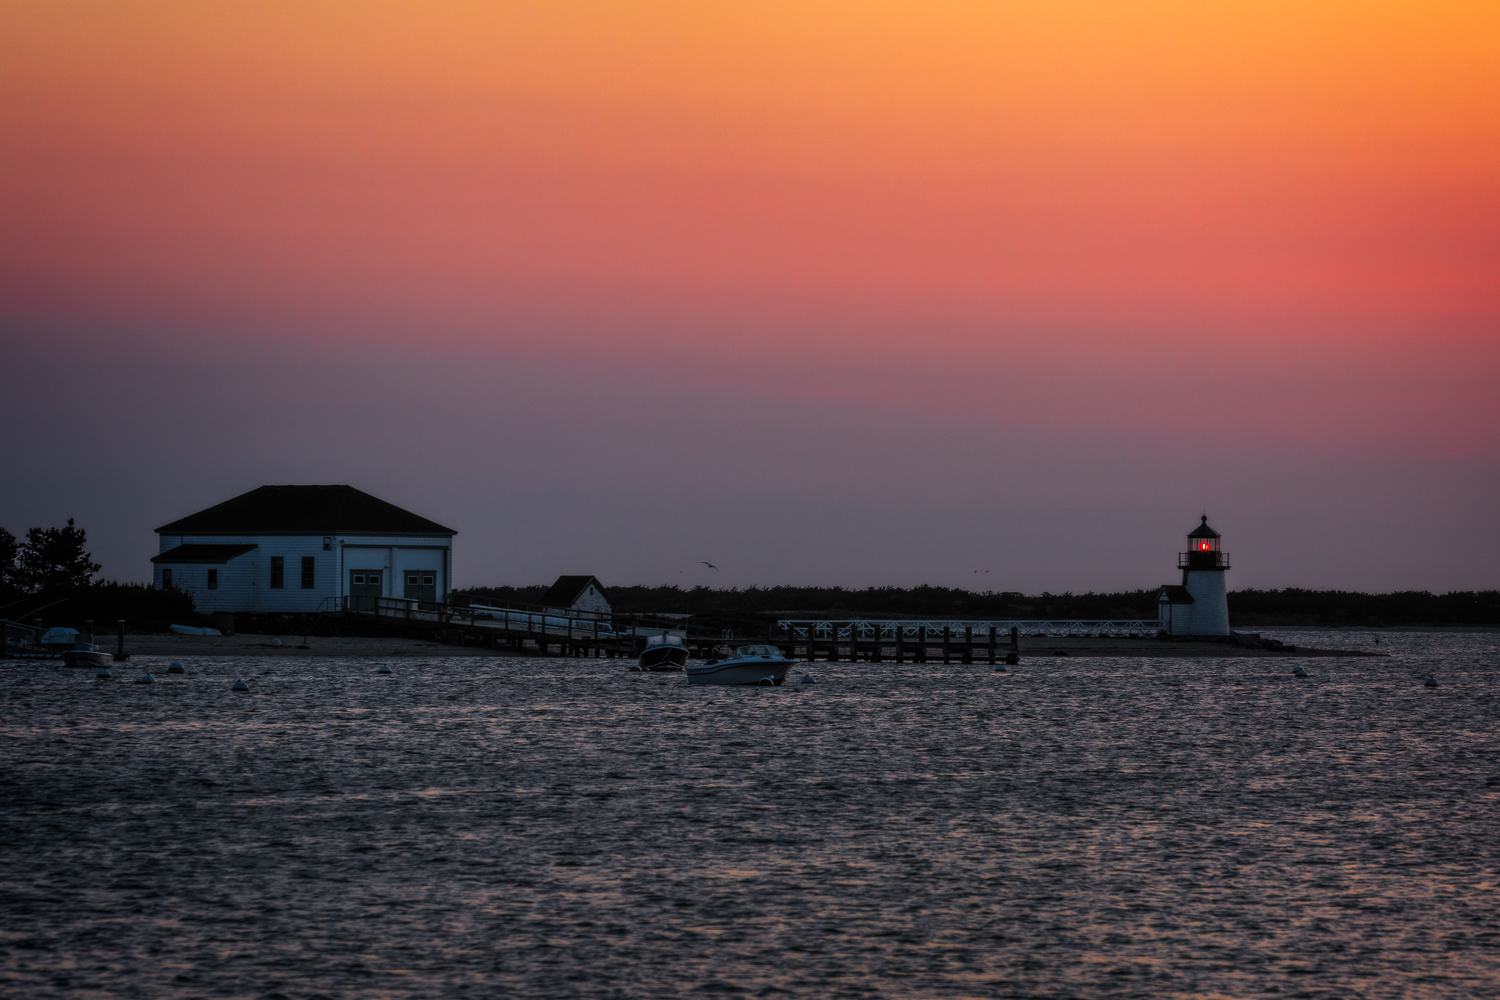 Here is Brandt Point Lighthouse at dawn.